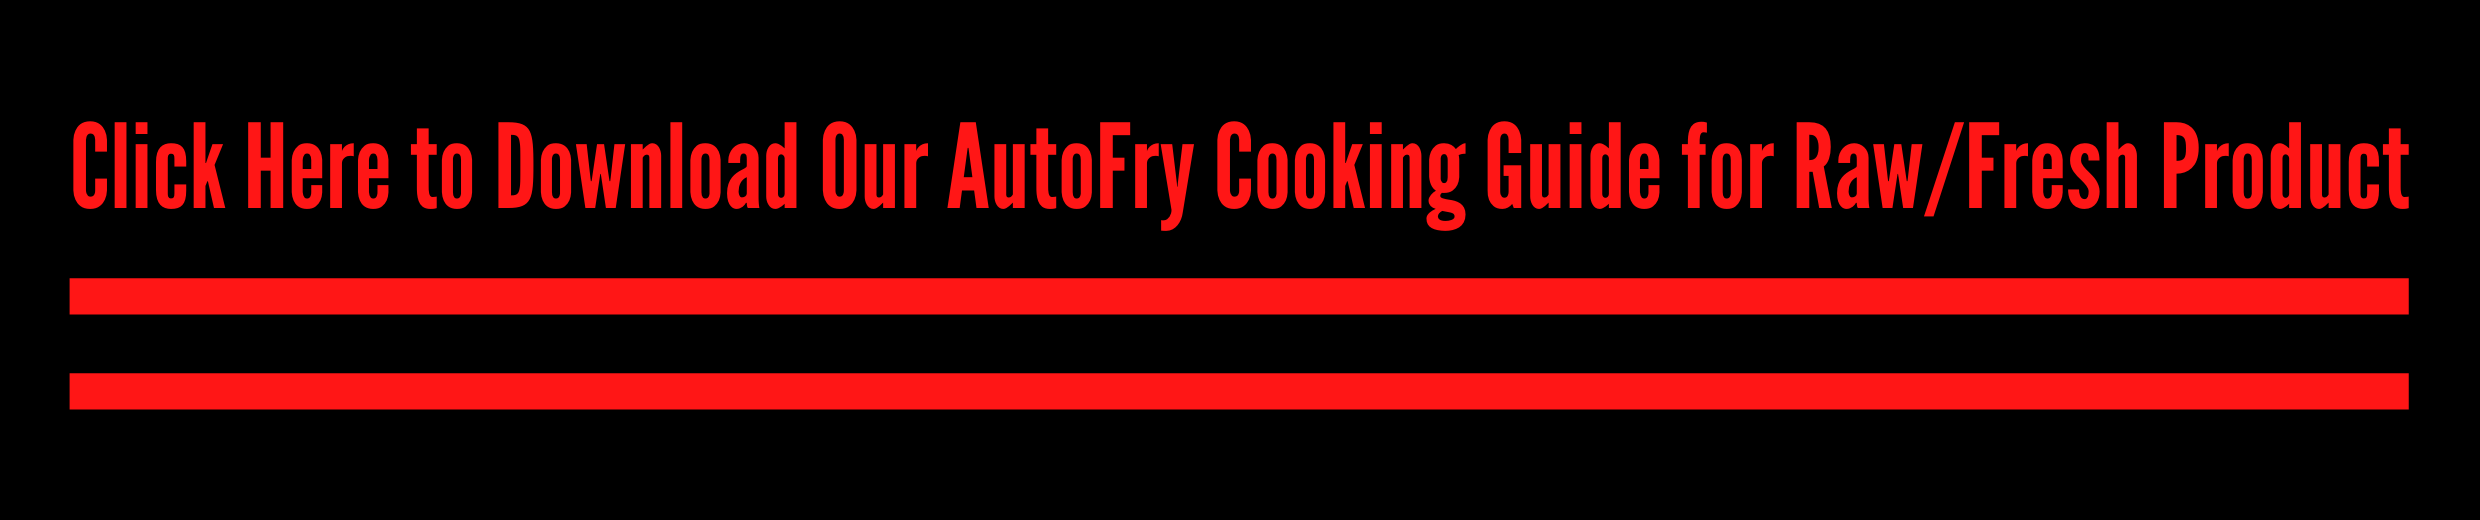 AutoFry Fresh/Raw Product Cooking Guide